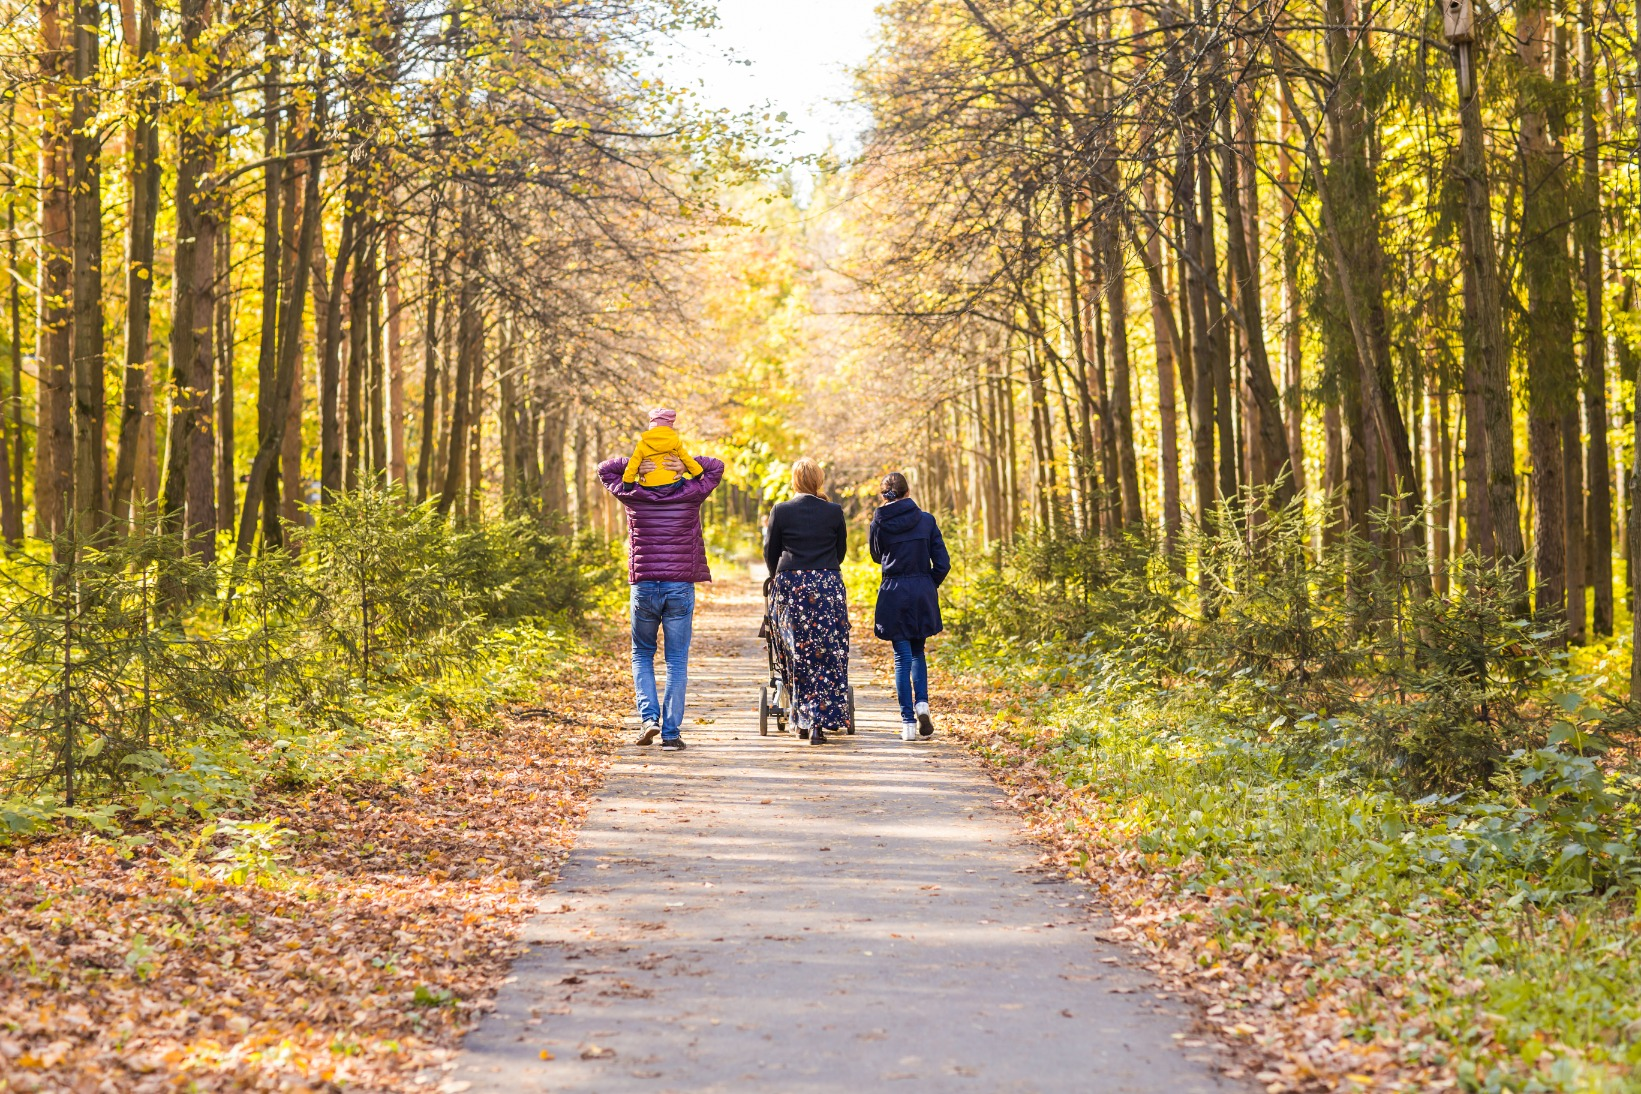 young-family-outdoors-walking-through-autumn-park-PWBLP9L (1)